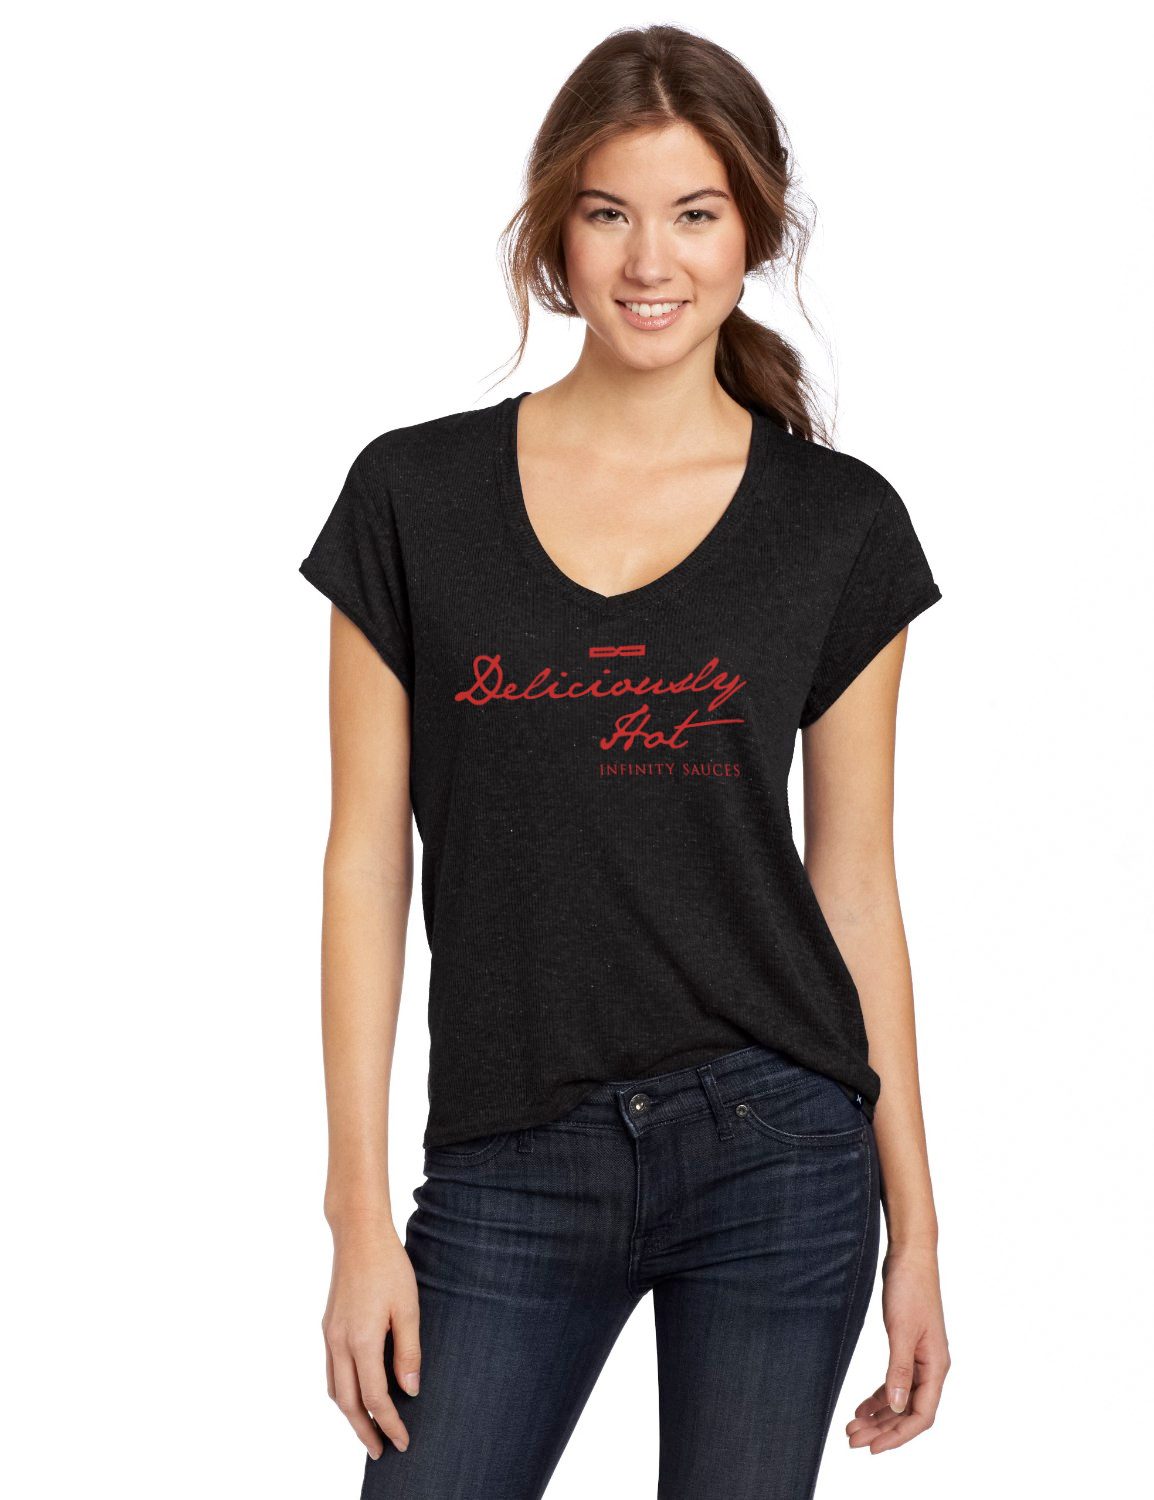 deliciously hot ladies v neck tee infinity sauces